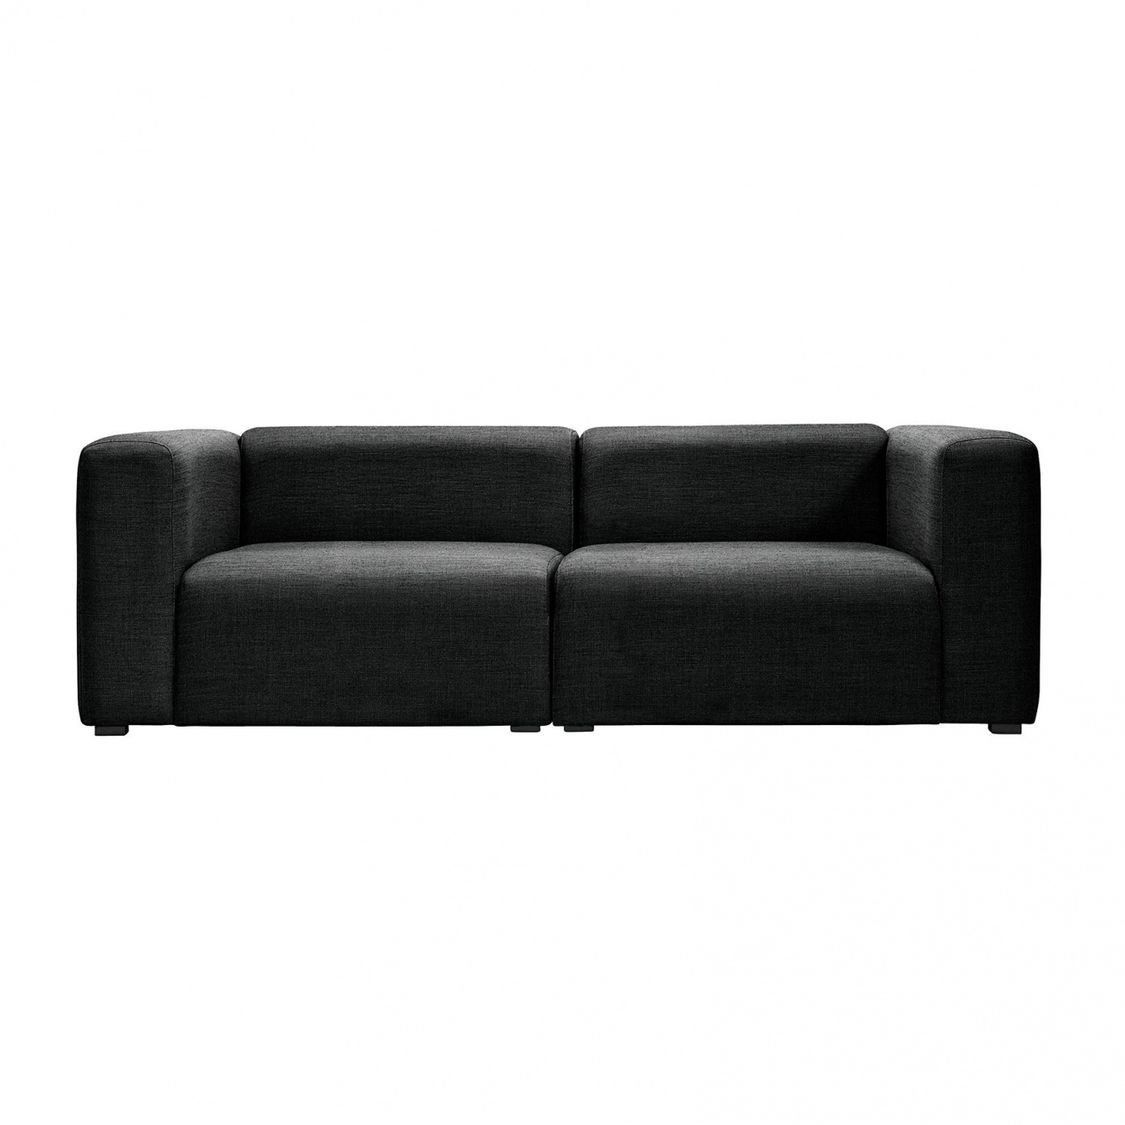 HAY Mags 2,5 Seater Sofa Fabric Surface | AmbienteDirect